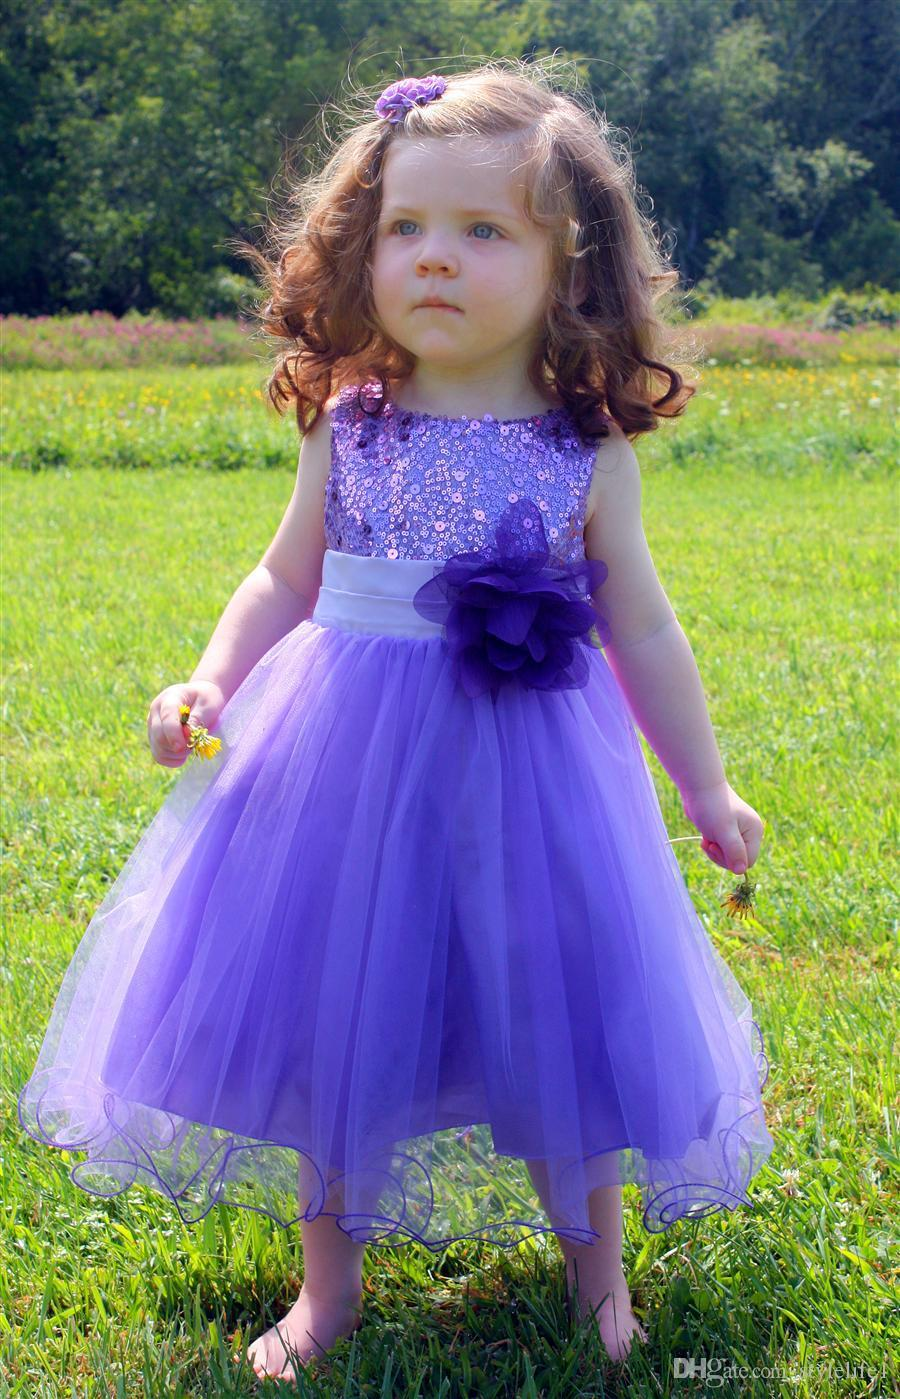 Girls Bridesmaid Dresses Purple Image collections - Braidsmaid Dress ...